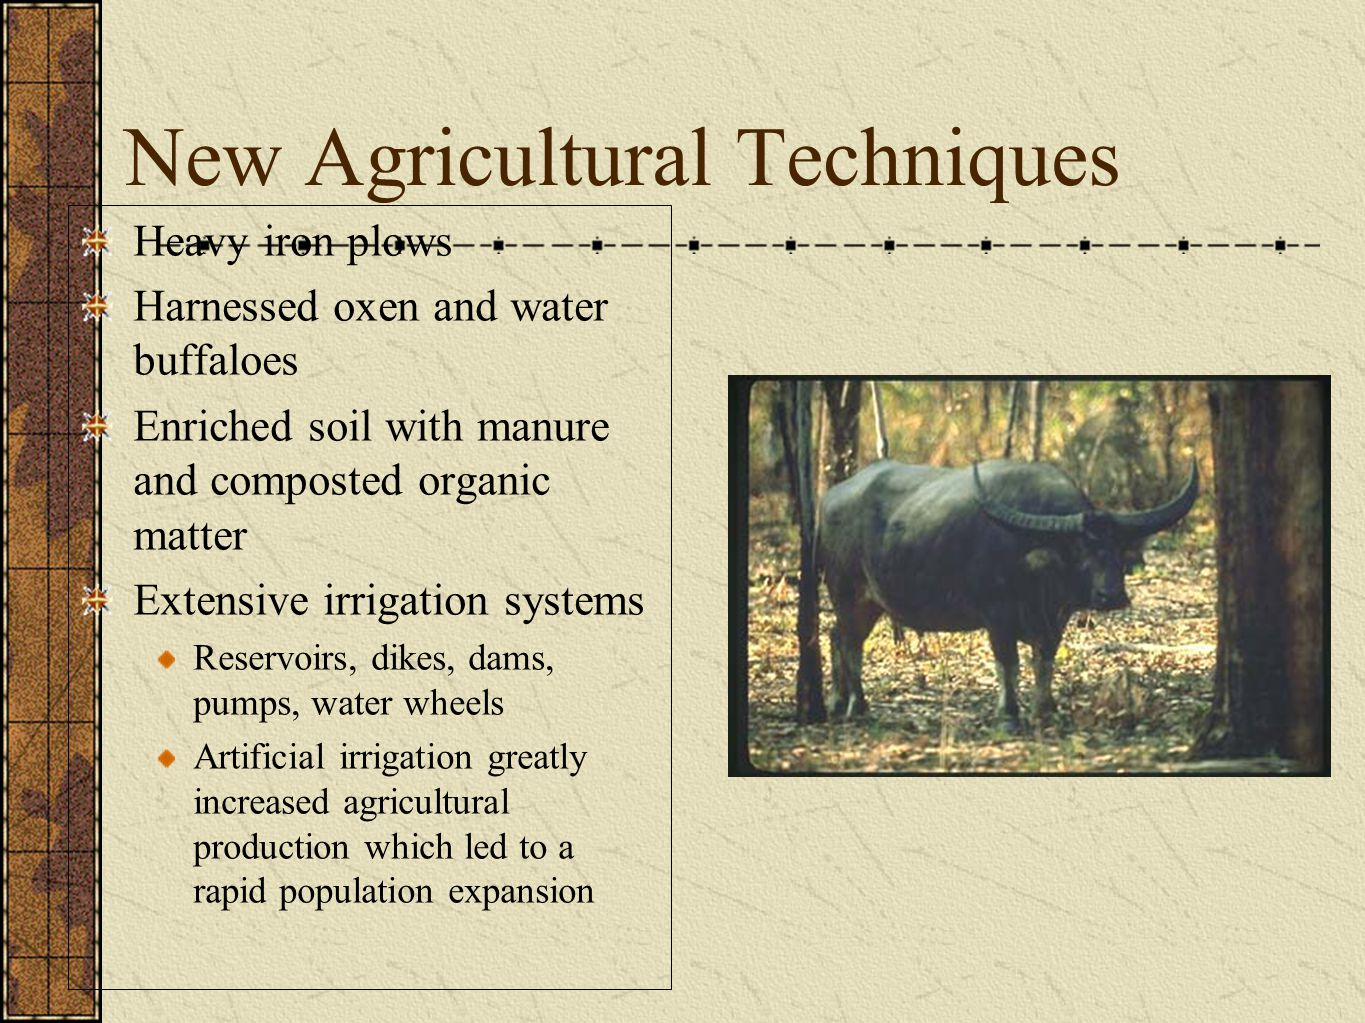 New Agricultural Techniques Heavy iron plows Harnessed oxen and water buffaloes Enriched soil with manure and composted organic matter Extensive irrigation systems Reservoirs, dikes, dams, pumps, water wheels Artificial irrigation greatly increased agricultural production which led to a rapid population expansion